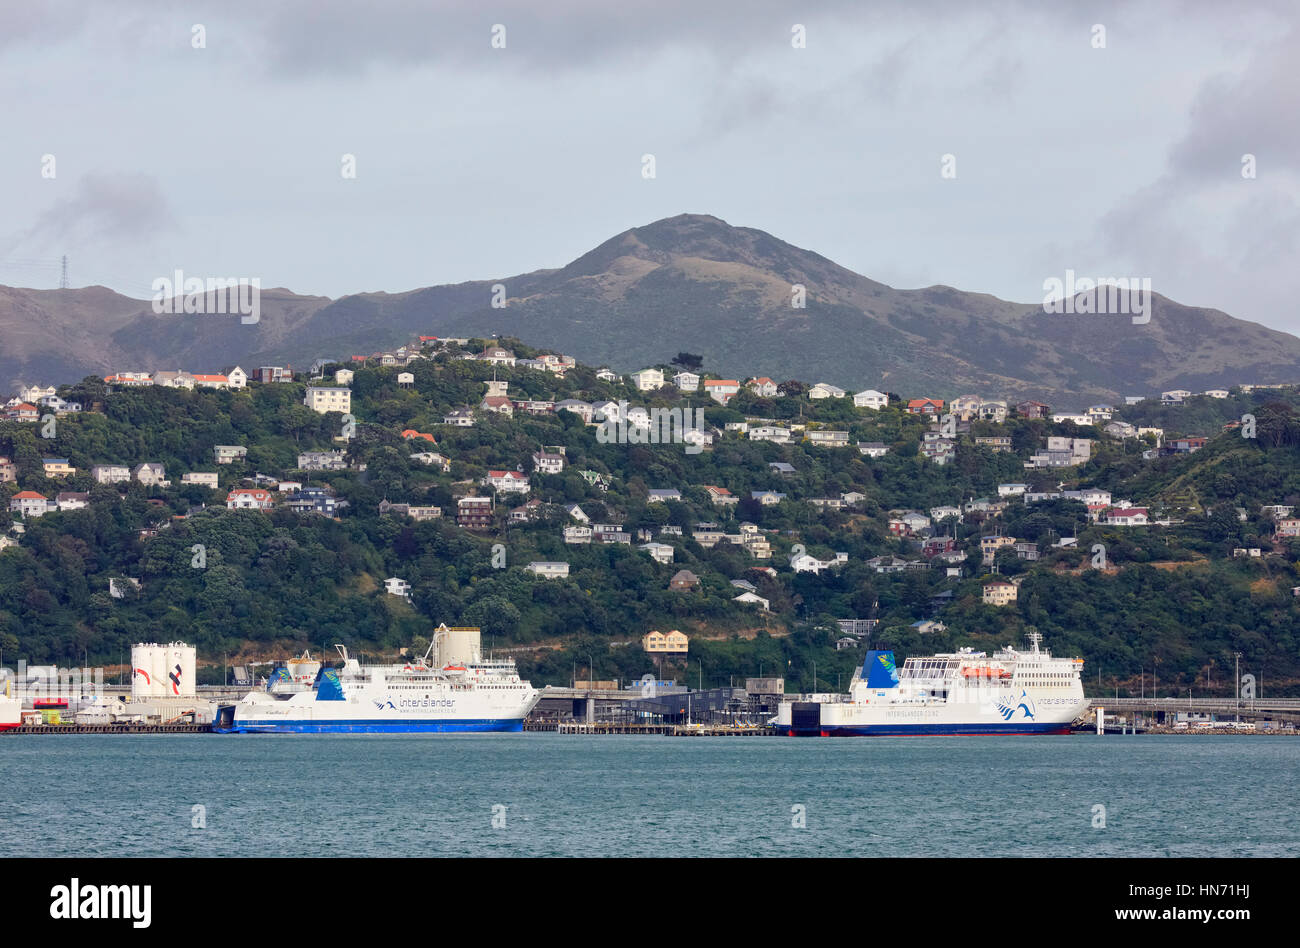 Interislander ferry, Wellington, New Zealand - Stock Image